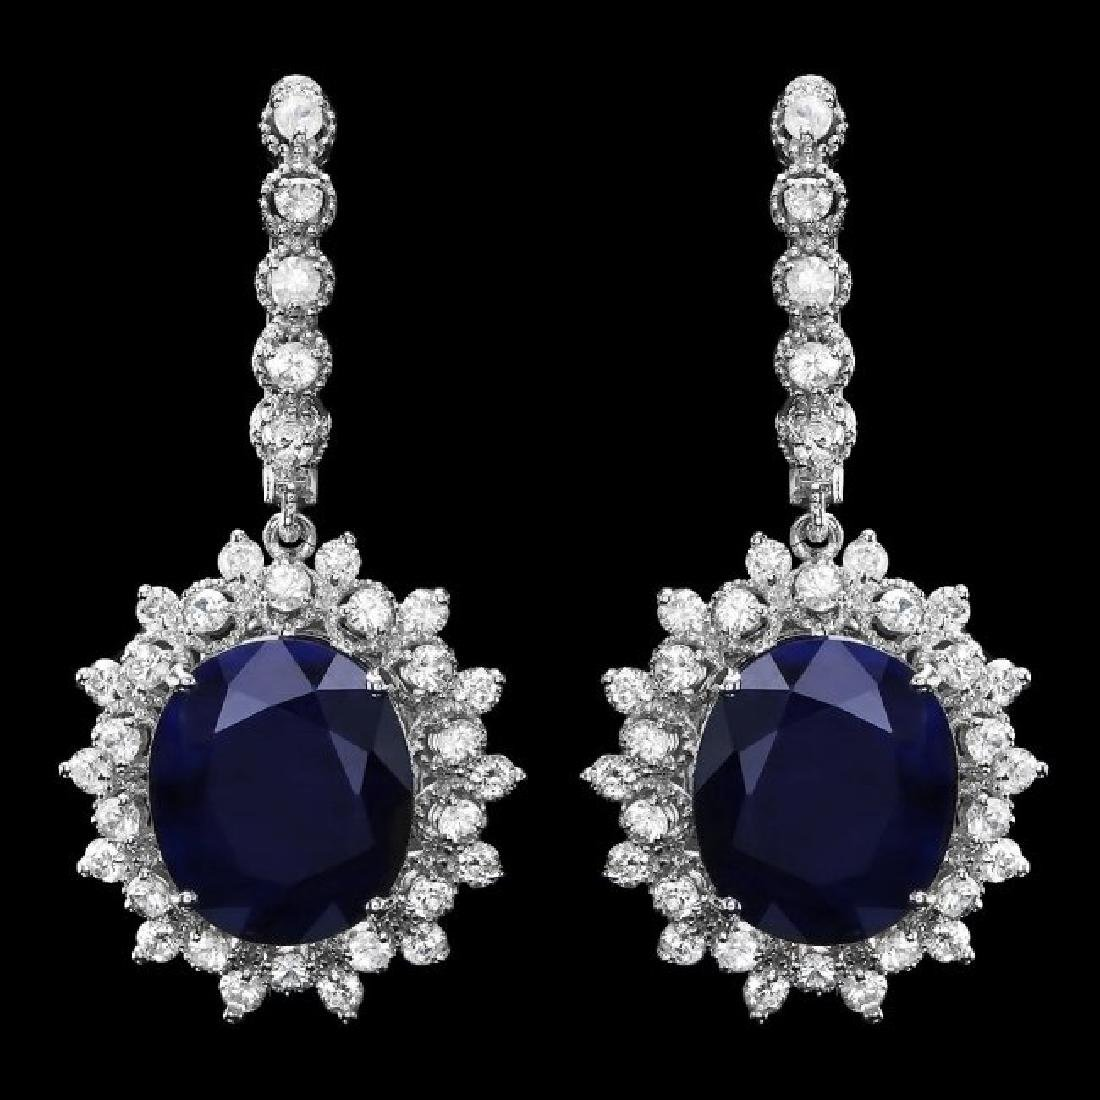 14k Gold 14ct Sapphire 2.00ct Diamond Earrings